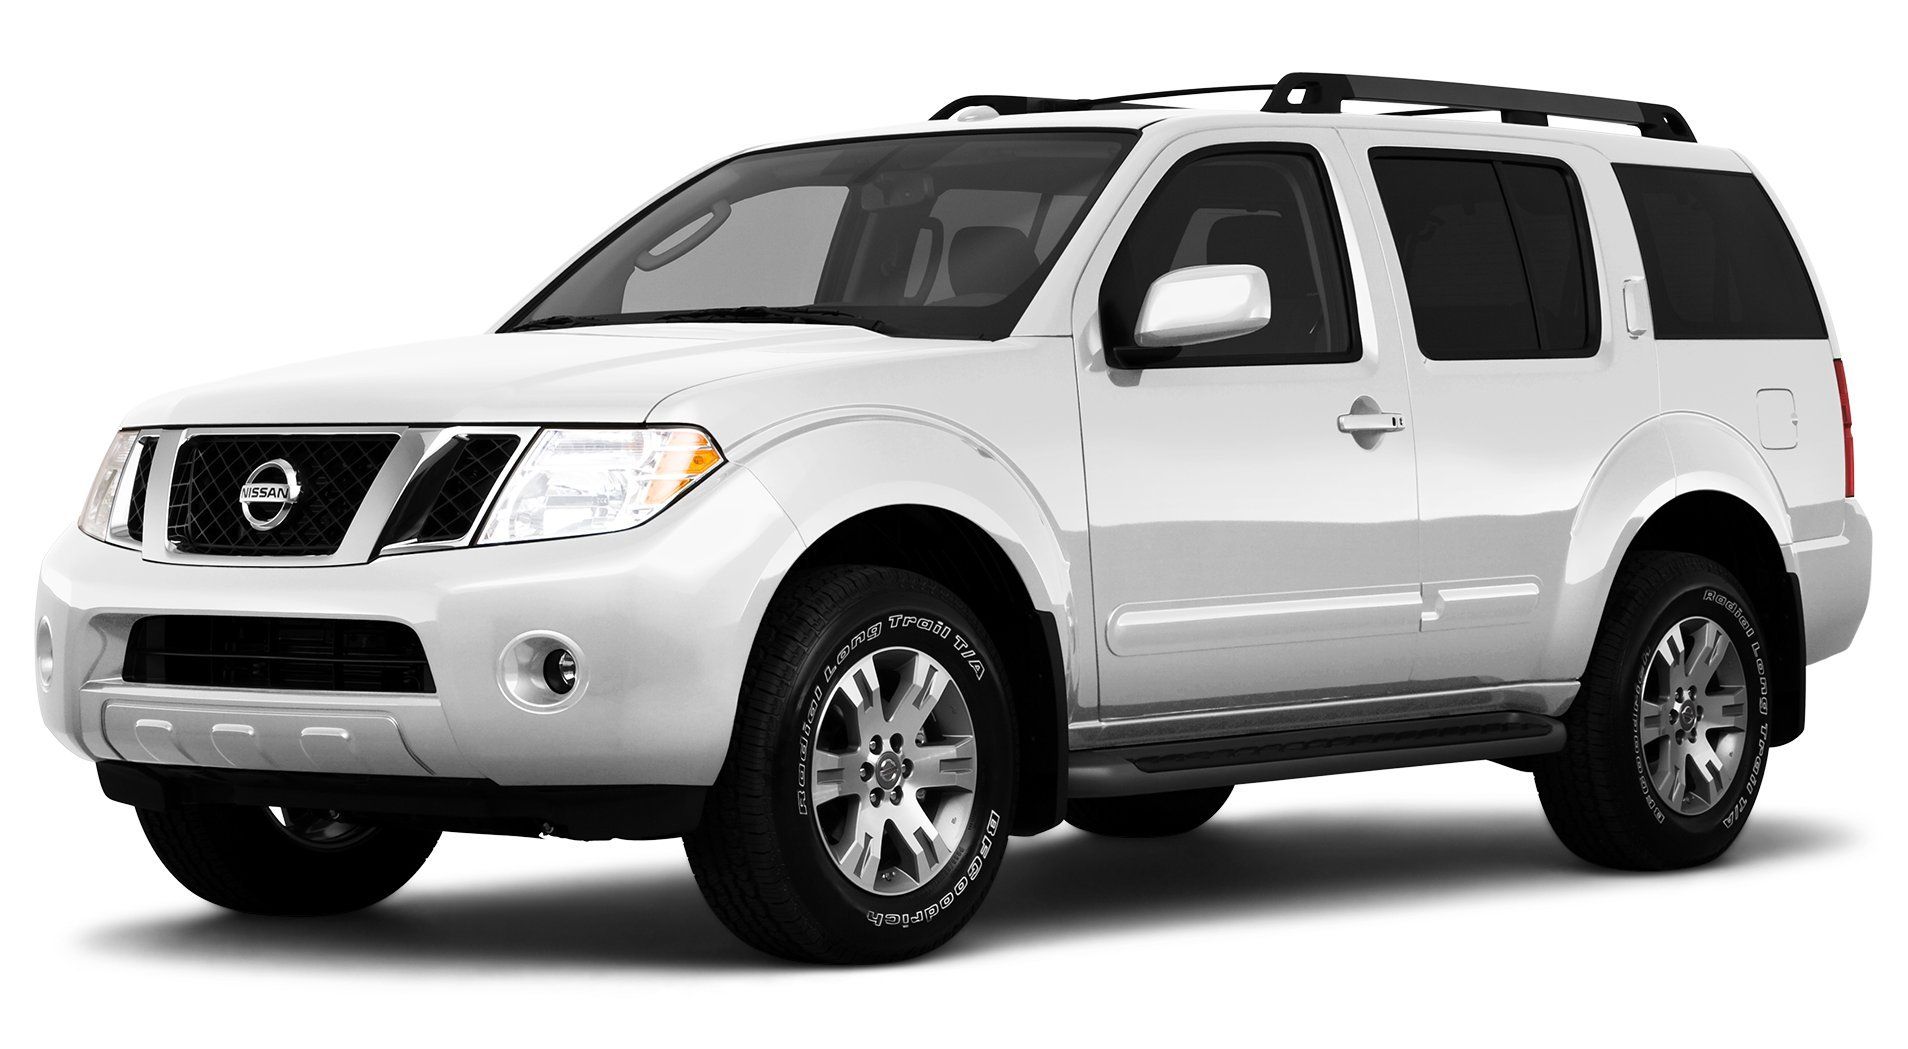 2010 nissan pathfinder reviews images and. Black Bedroom Furniture Sets. Home Design Ideas